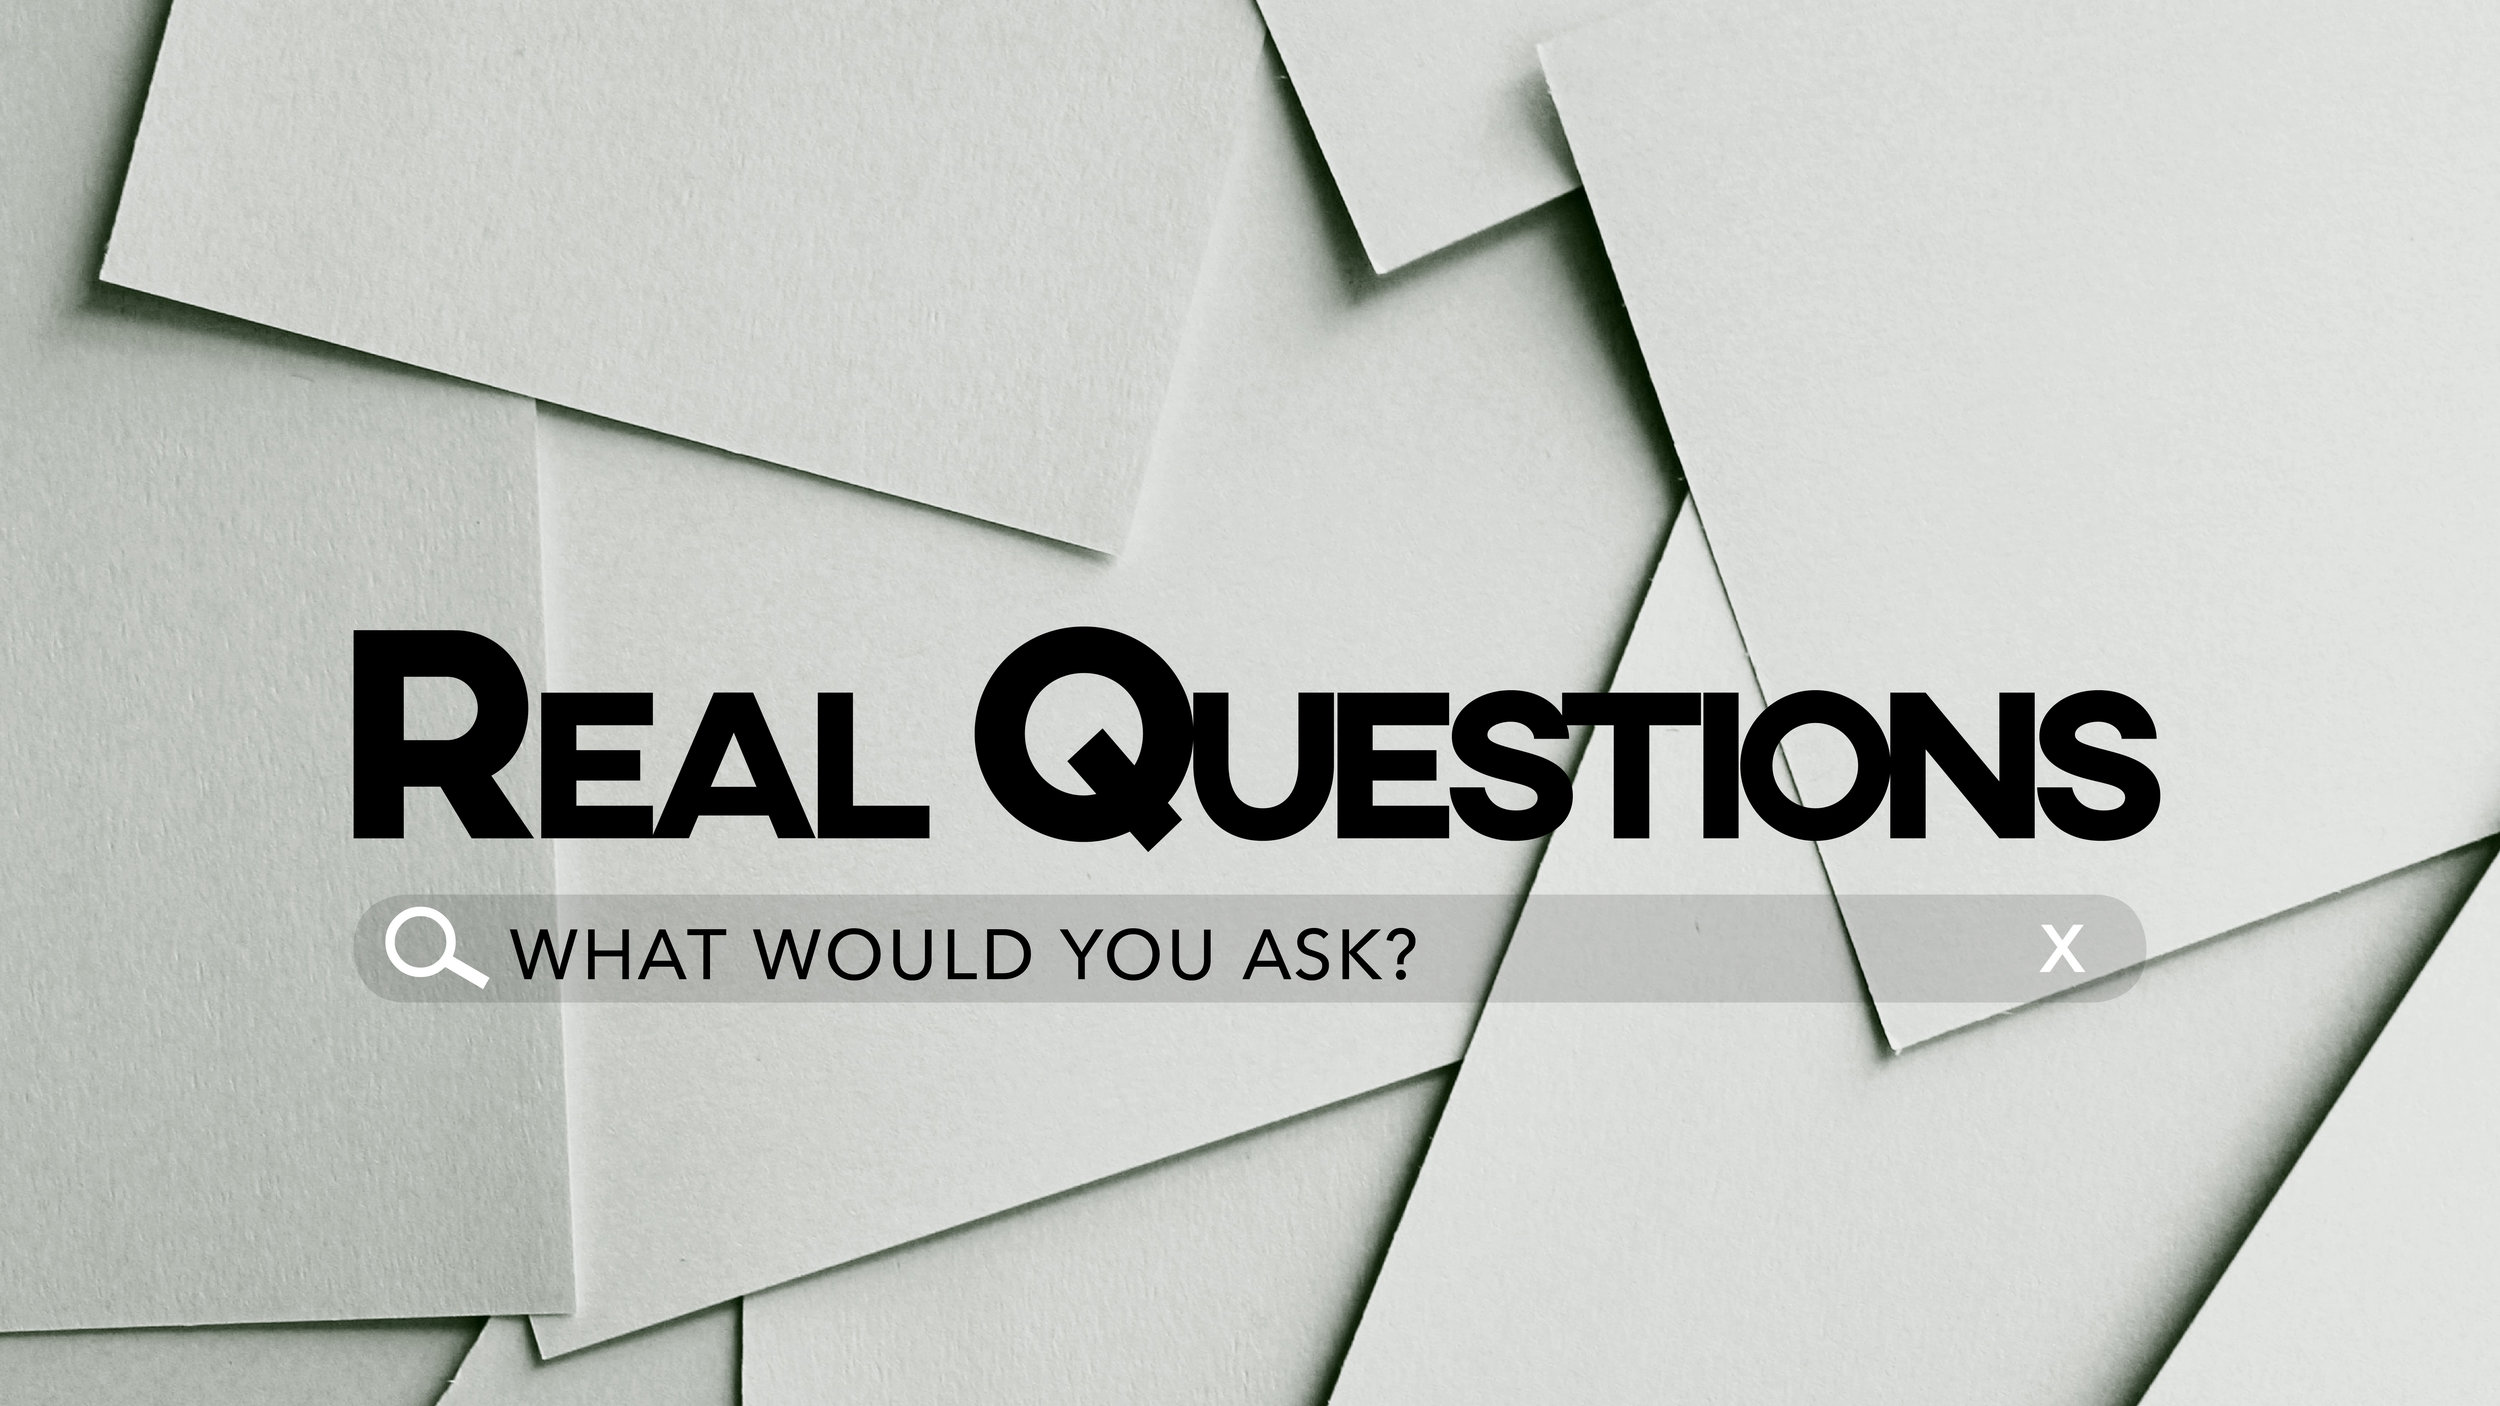 real questions monitor.jpg